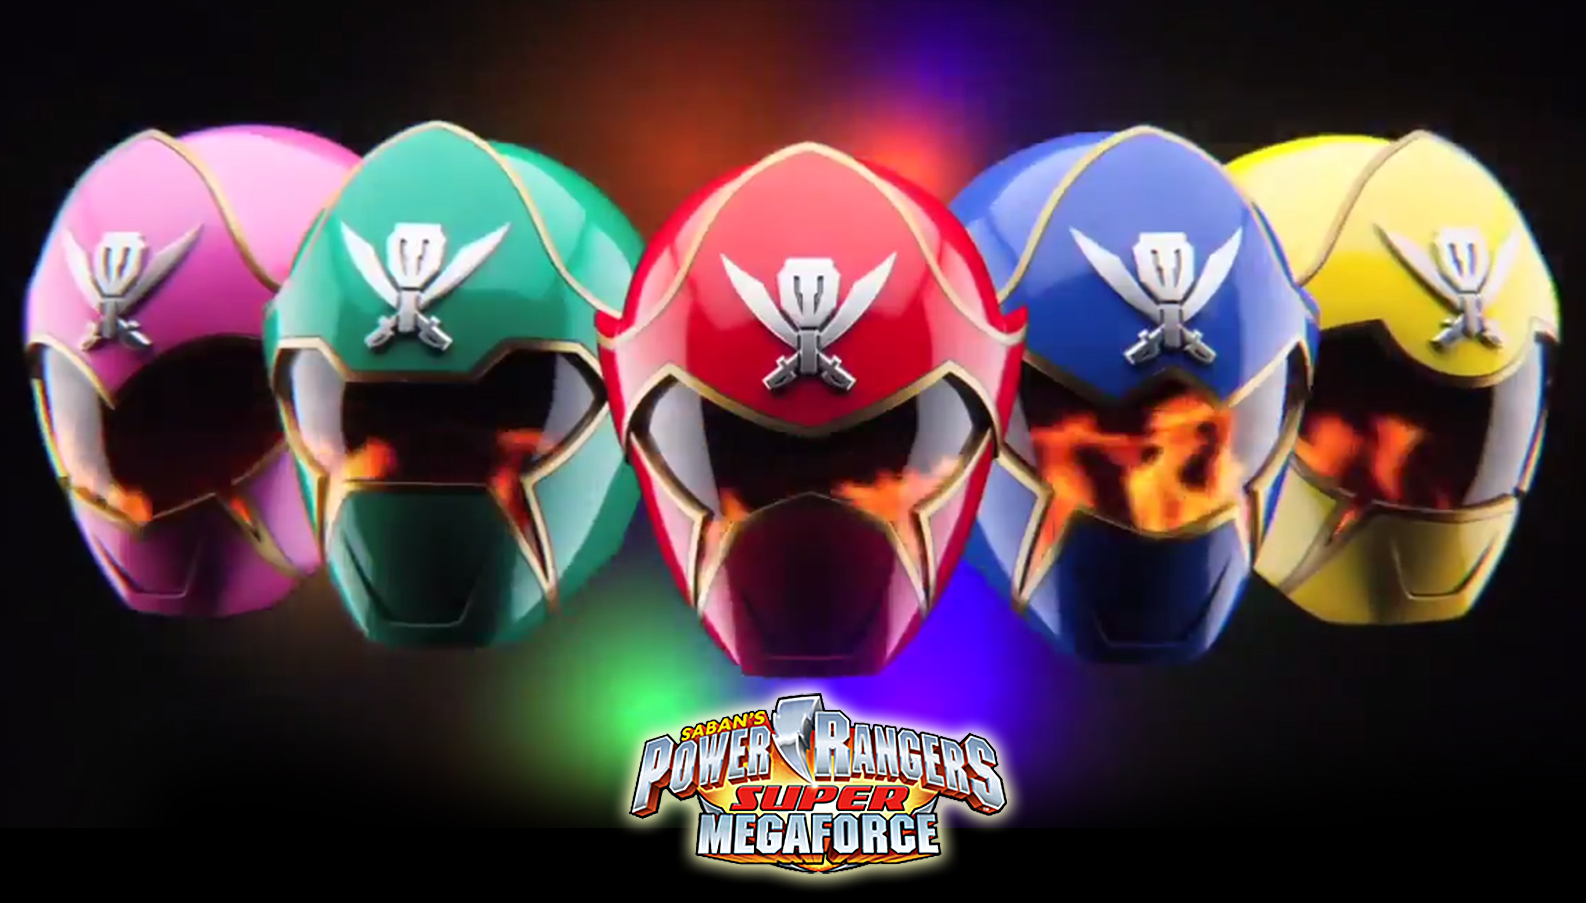 Power rangers super megaforce power rangers brasil wiki - Power rangers megaforce jungle fury ...